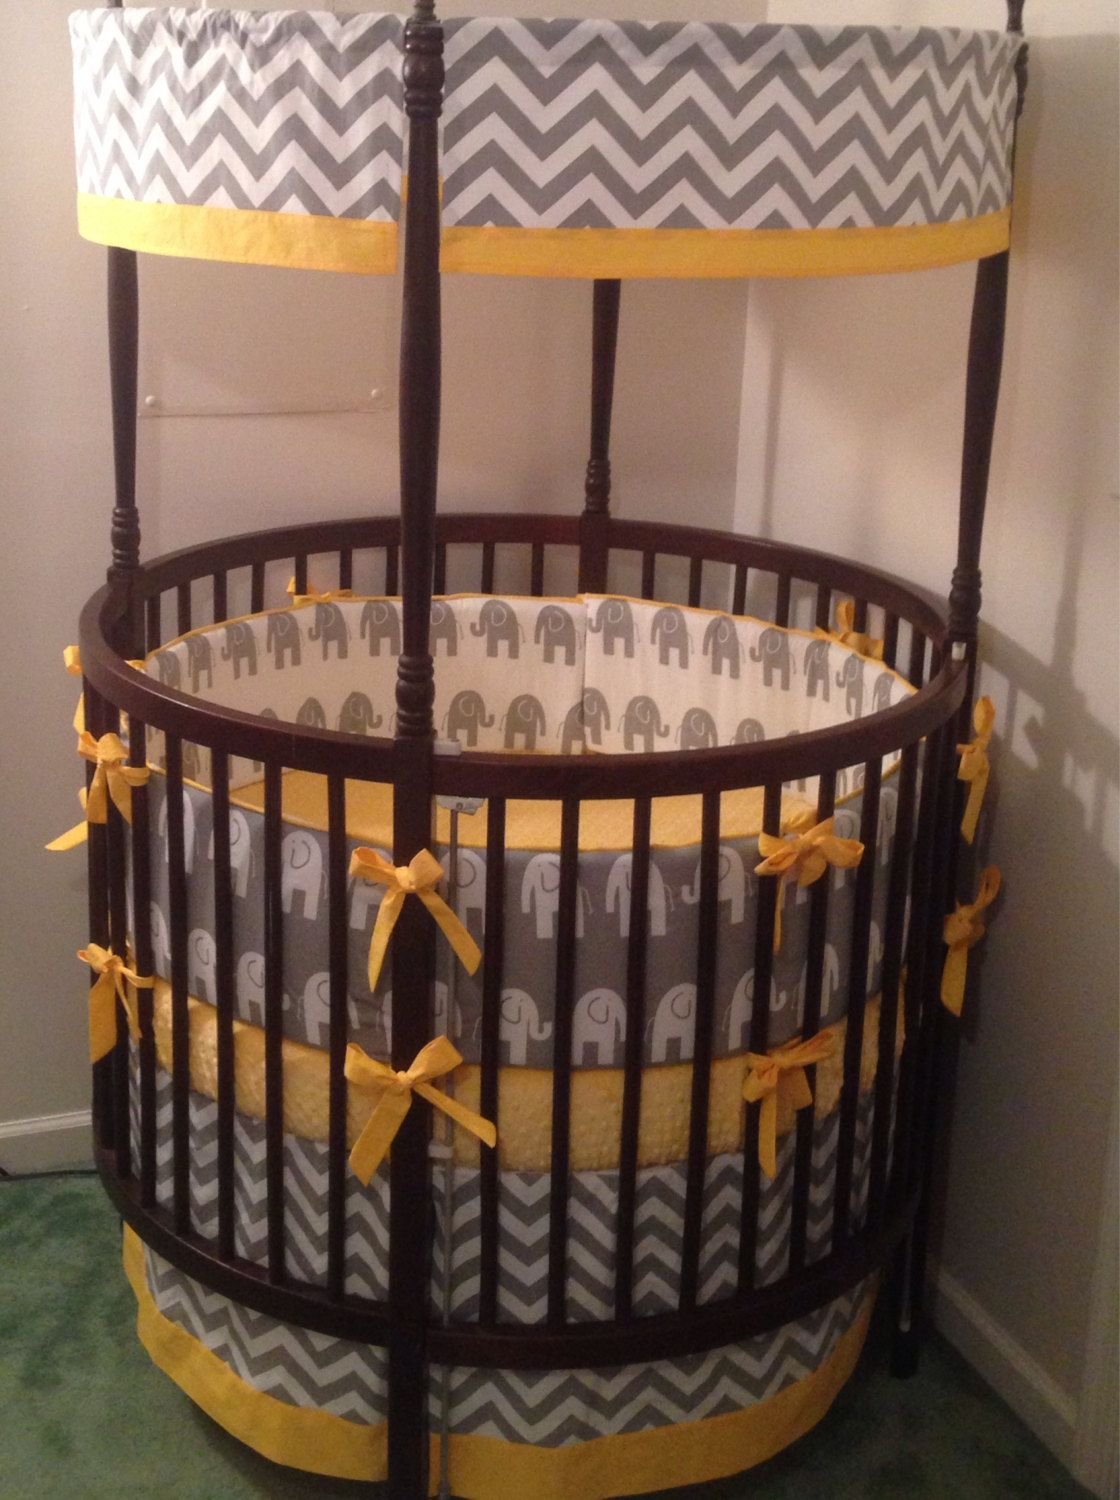 Ellery round crib for sale - Baby Boy Round Crib Bedding Set Yellow Red Navy And Gray